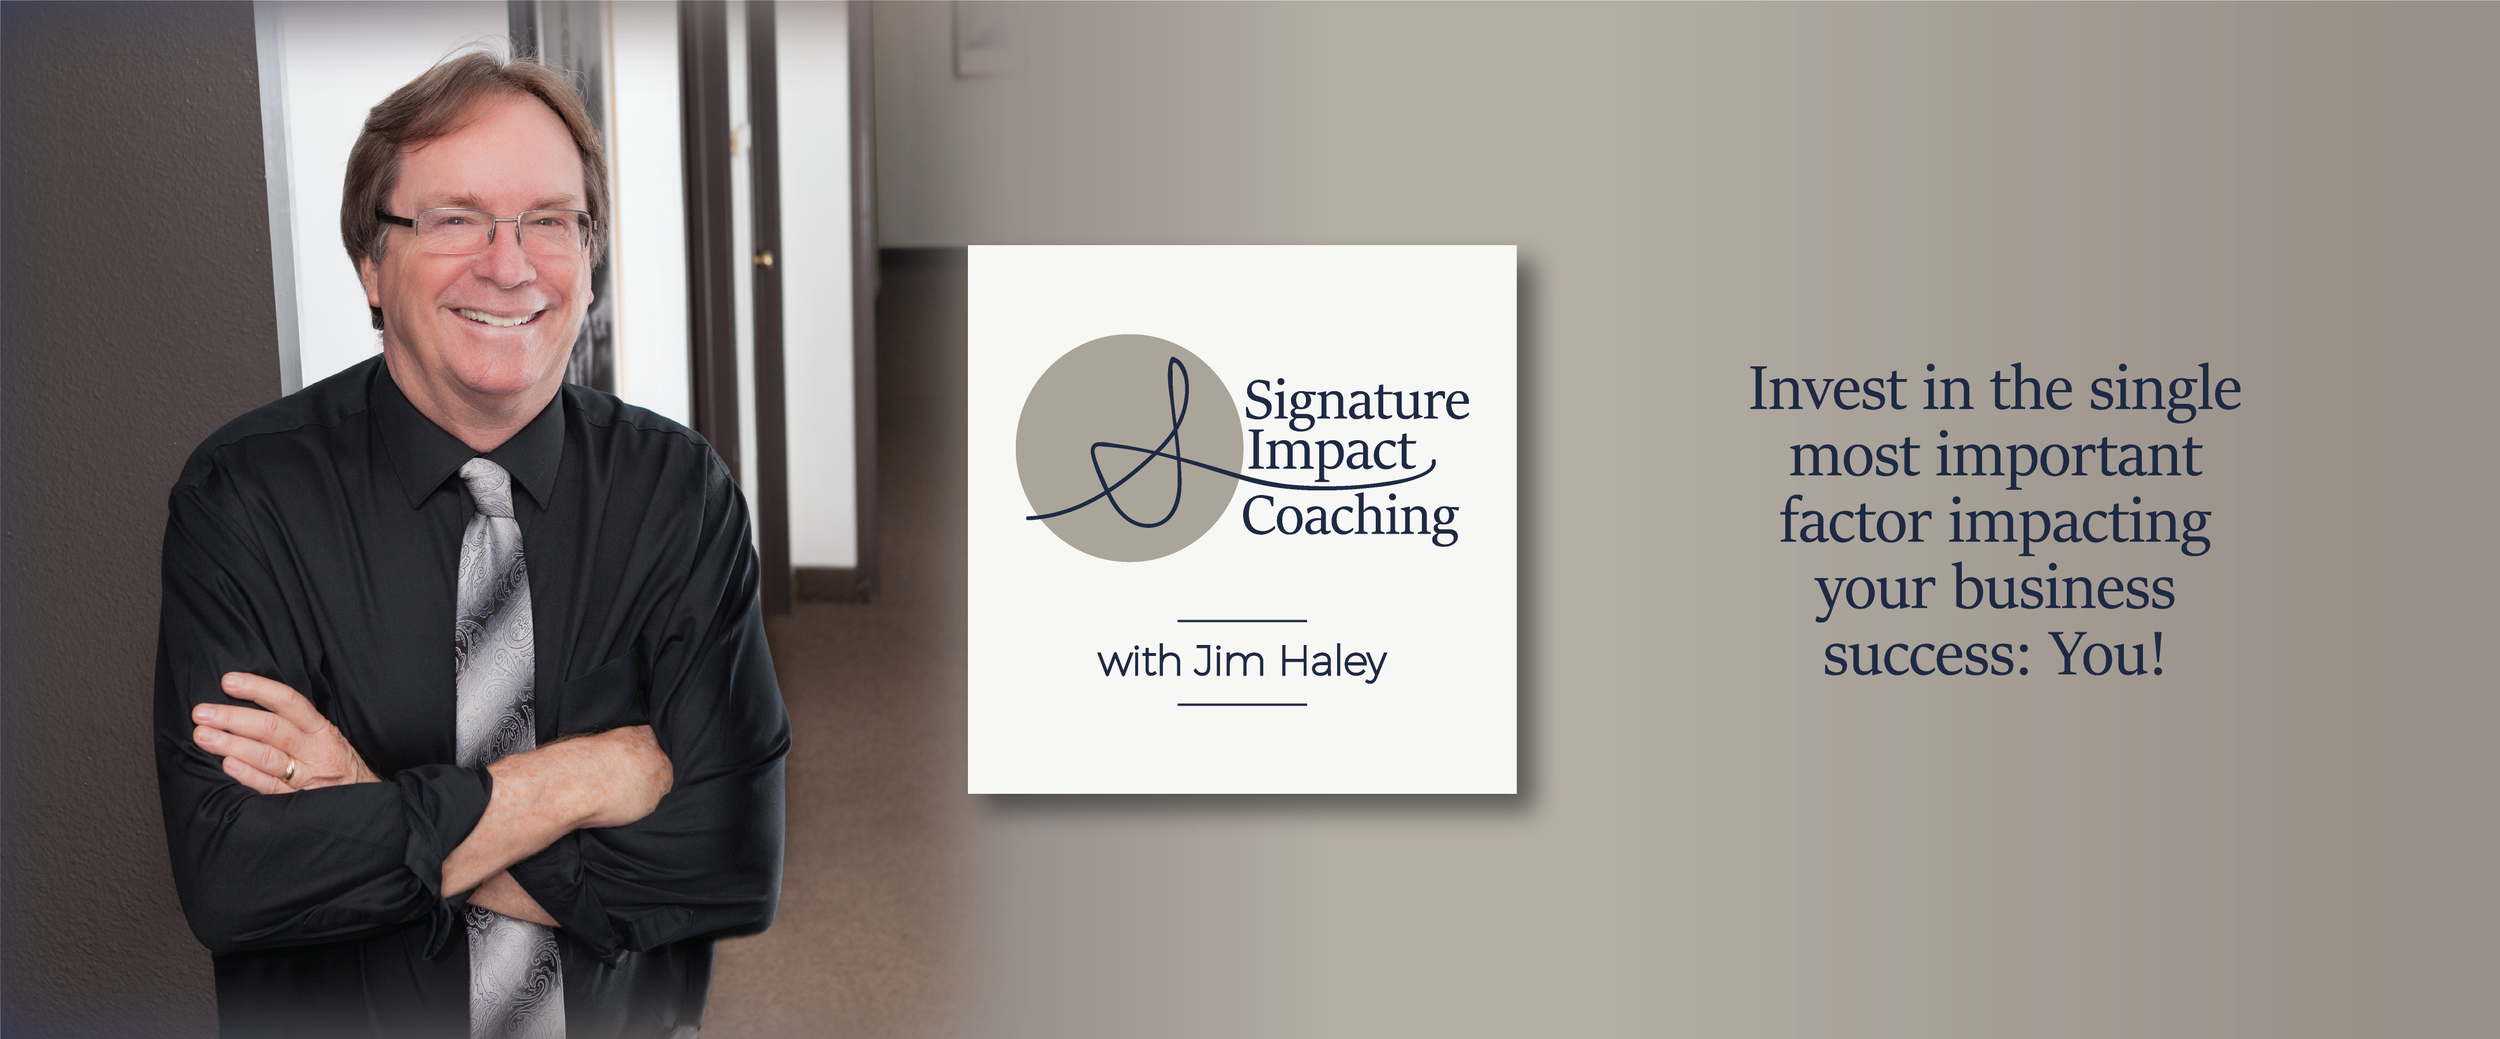 Signature Impact Coaching with Jim Haley